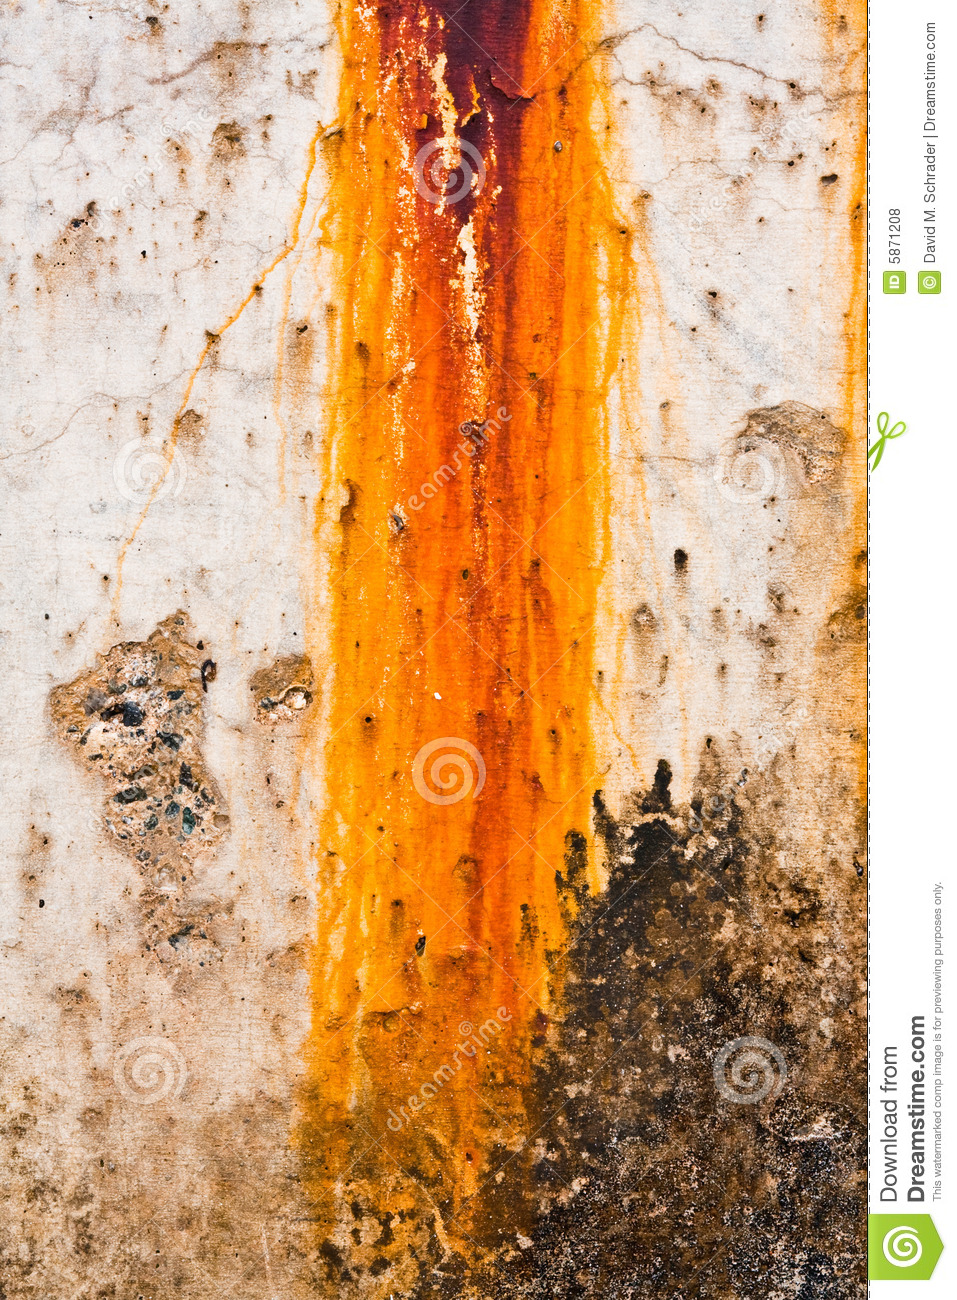 Breakwater Rust Stain Royalty Free Stock Photos.